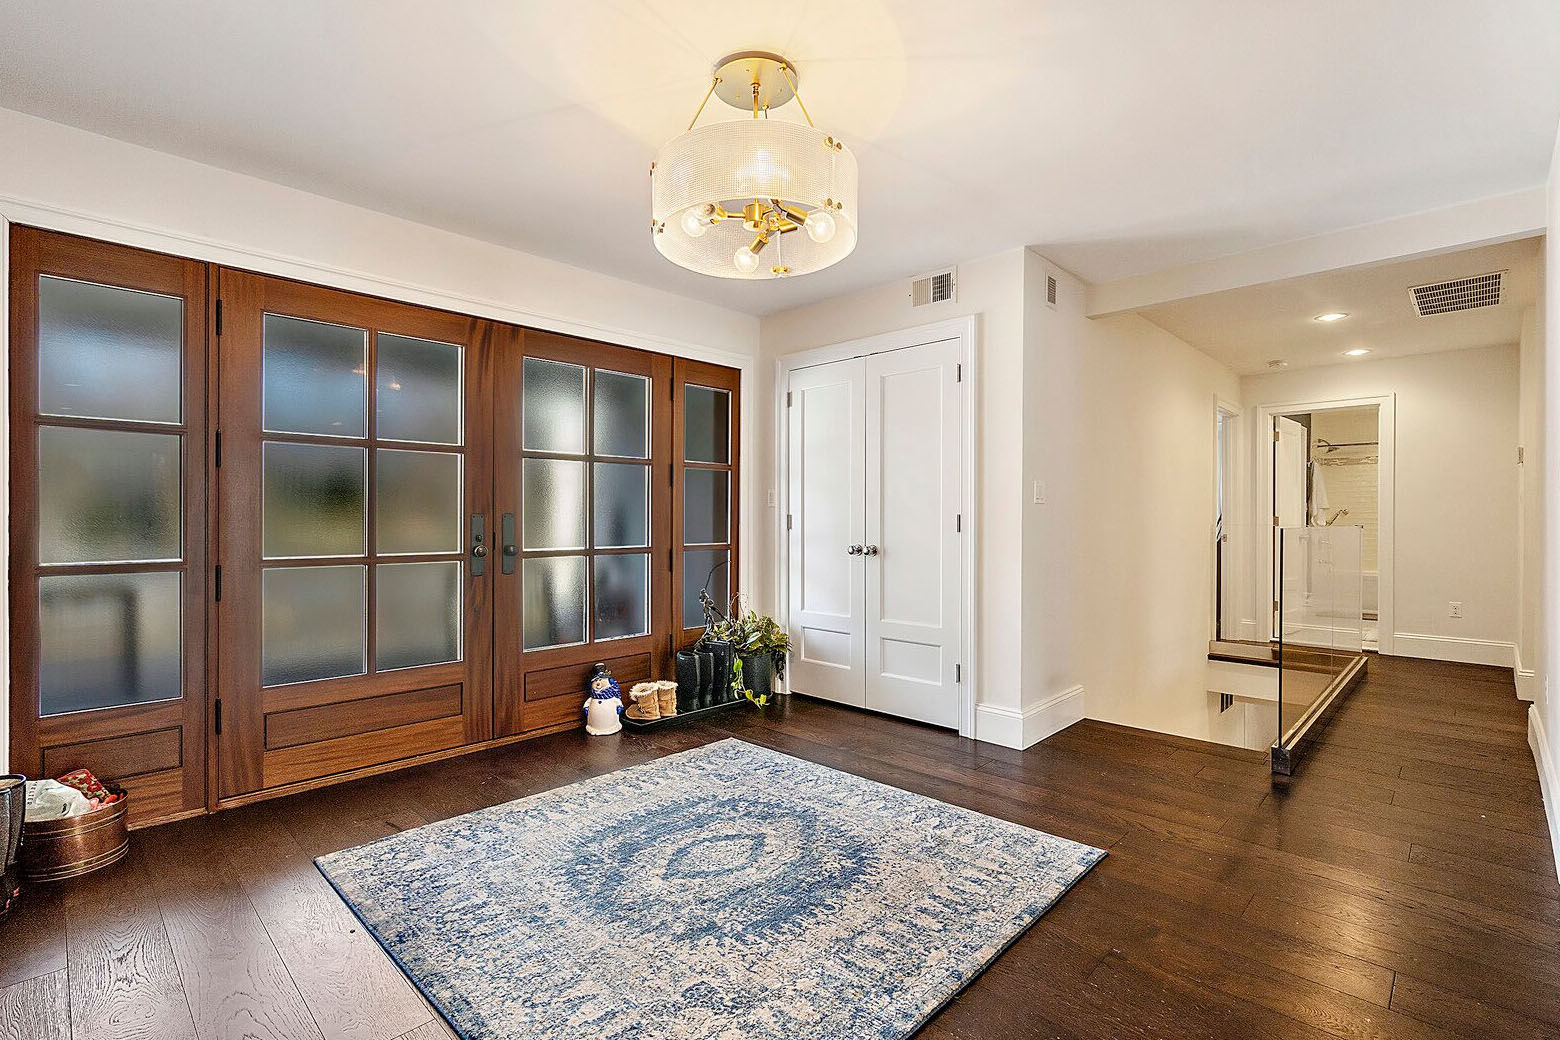 The house, which is listed for $1.75 million, features wall-to-wall walnut hardwood floors, valued at $80,000. (Courtesy Century 21 New Millennium/RealMarkets)